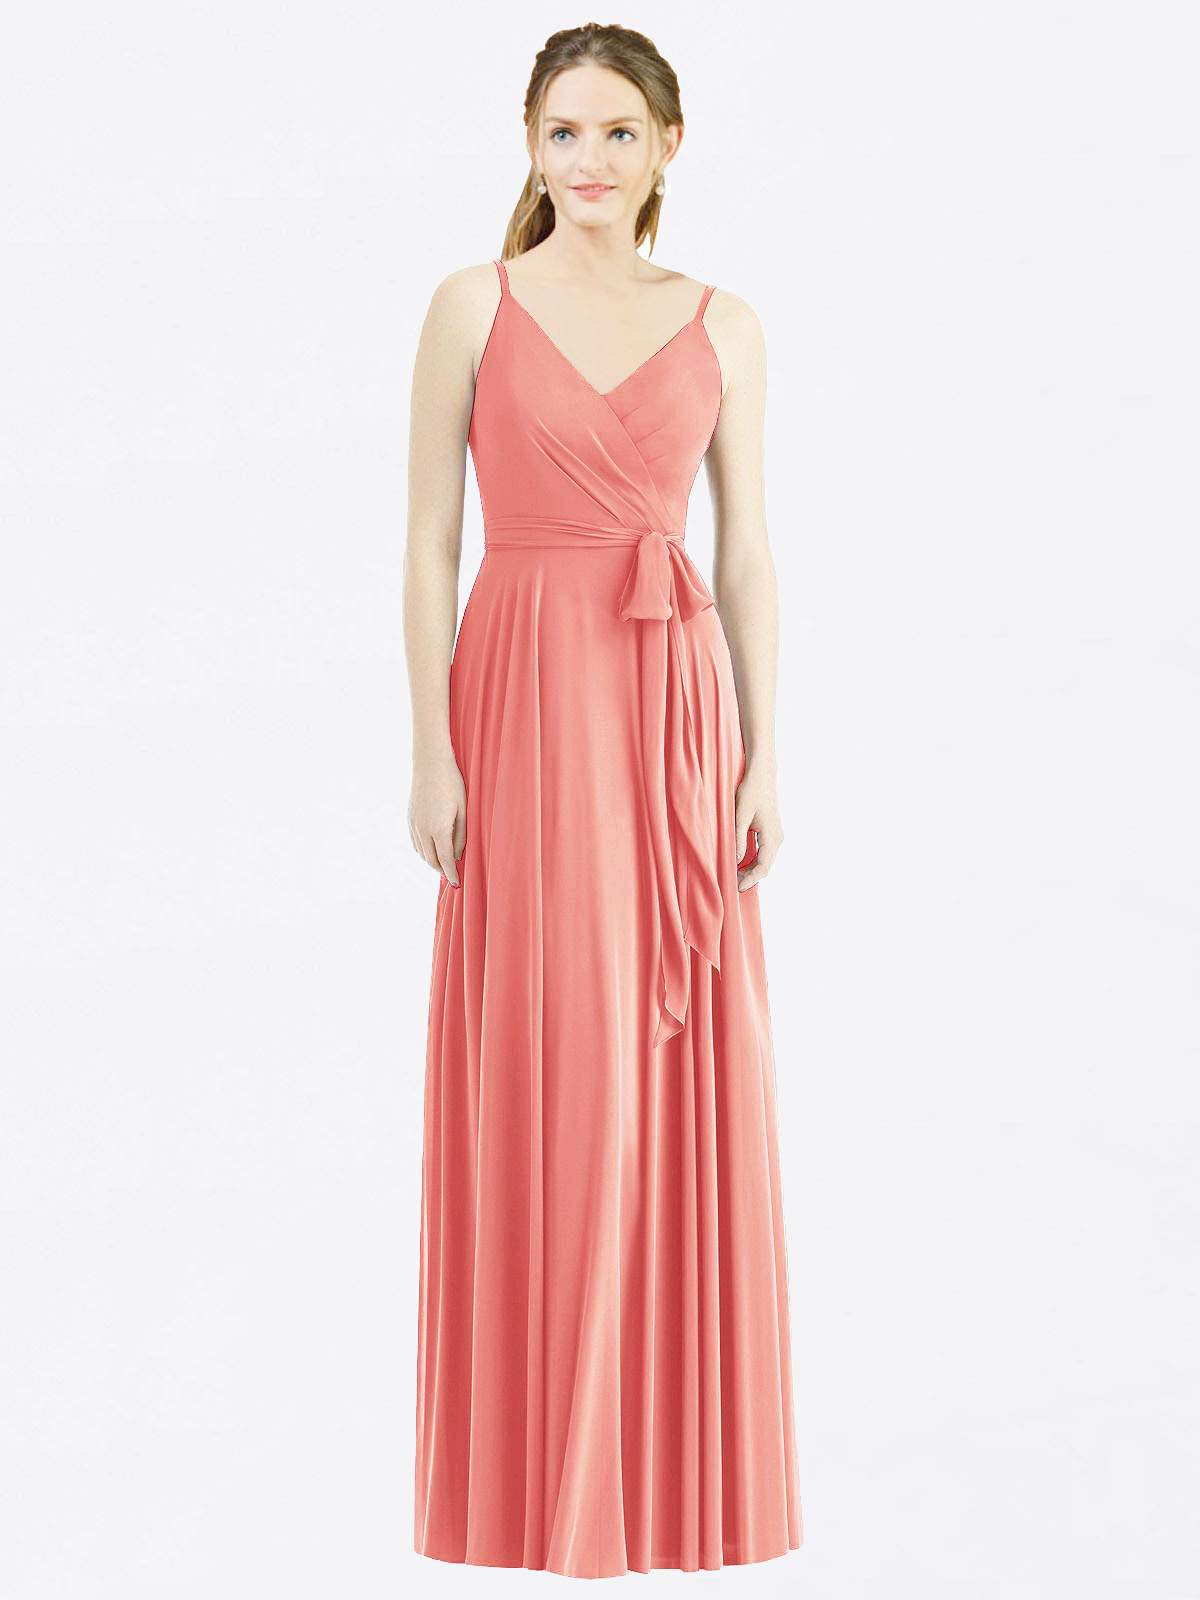 Long A-Line Spaghetti Straps, V-Neck Sleeveless Desert Rose Chiffon Bridesmaid Dress Madilyn